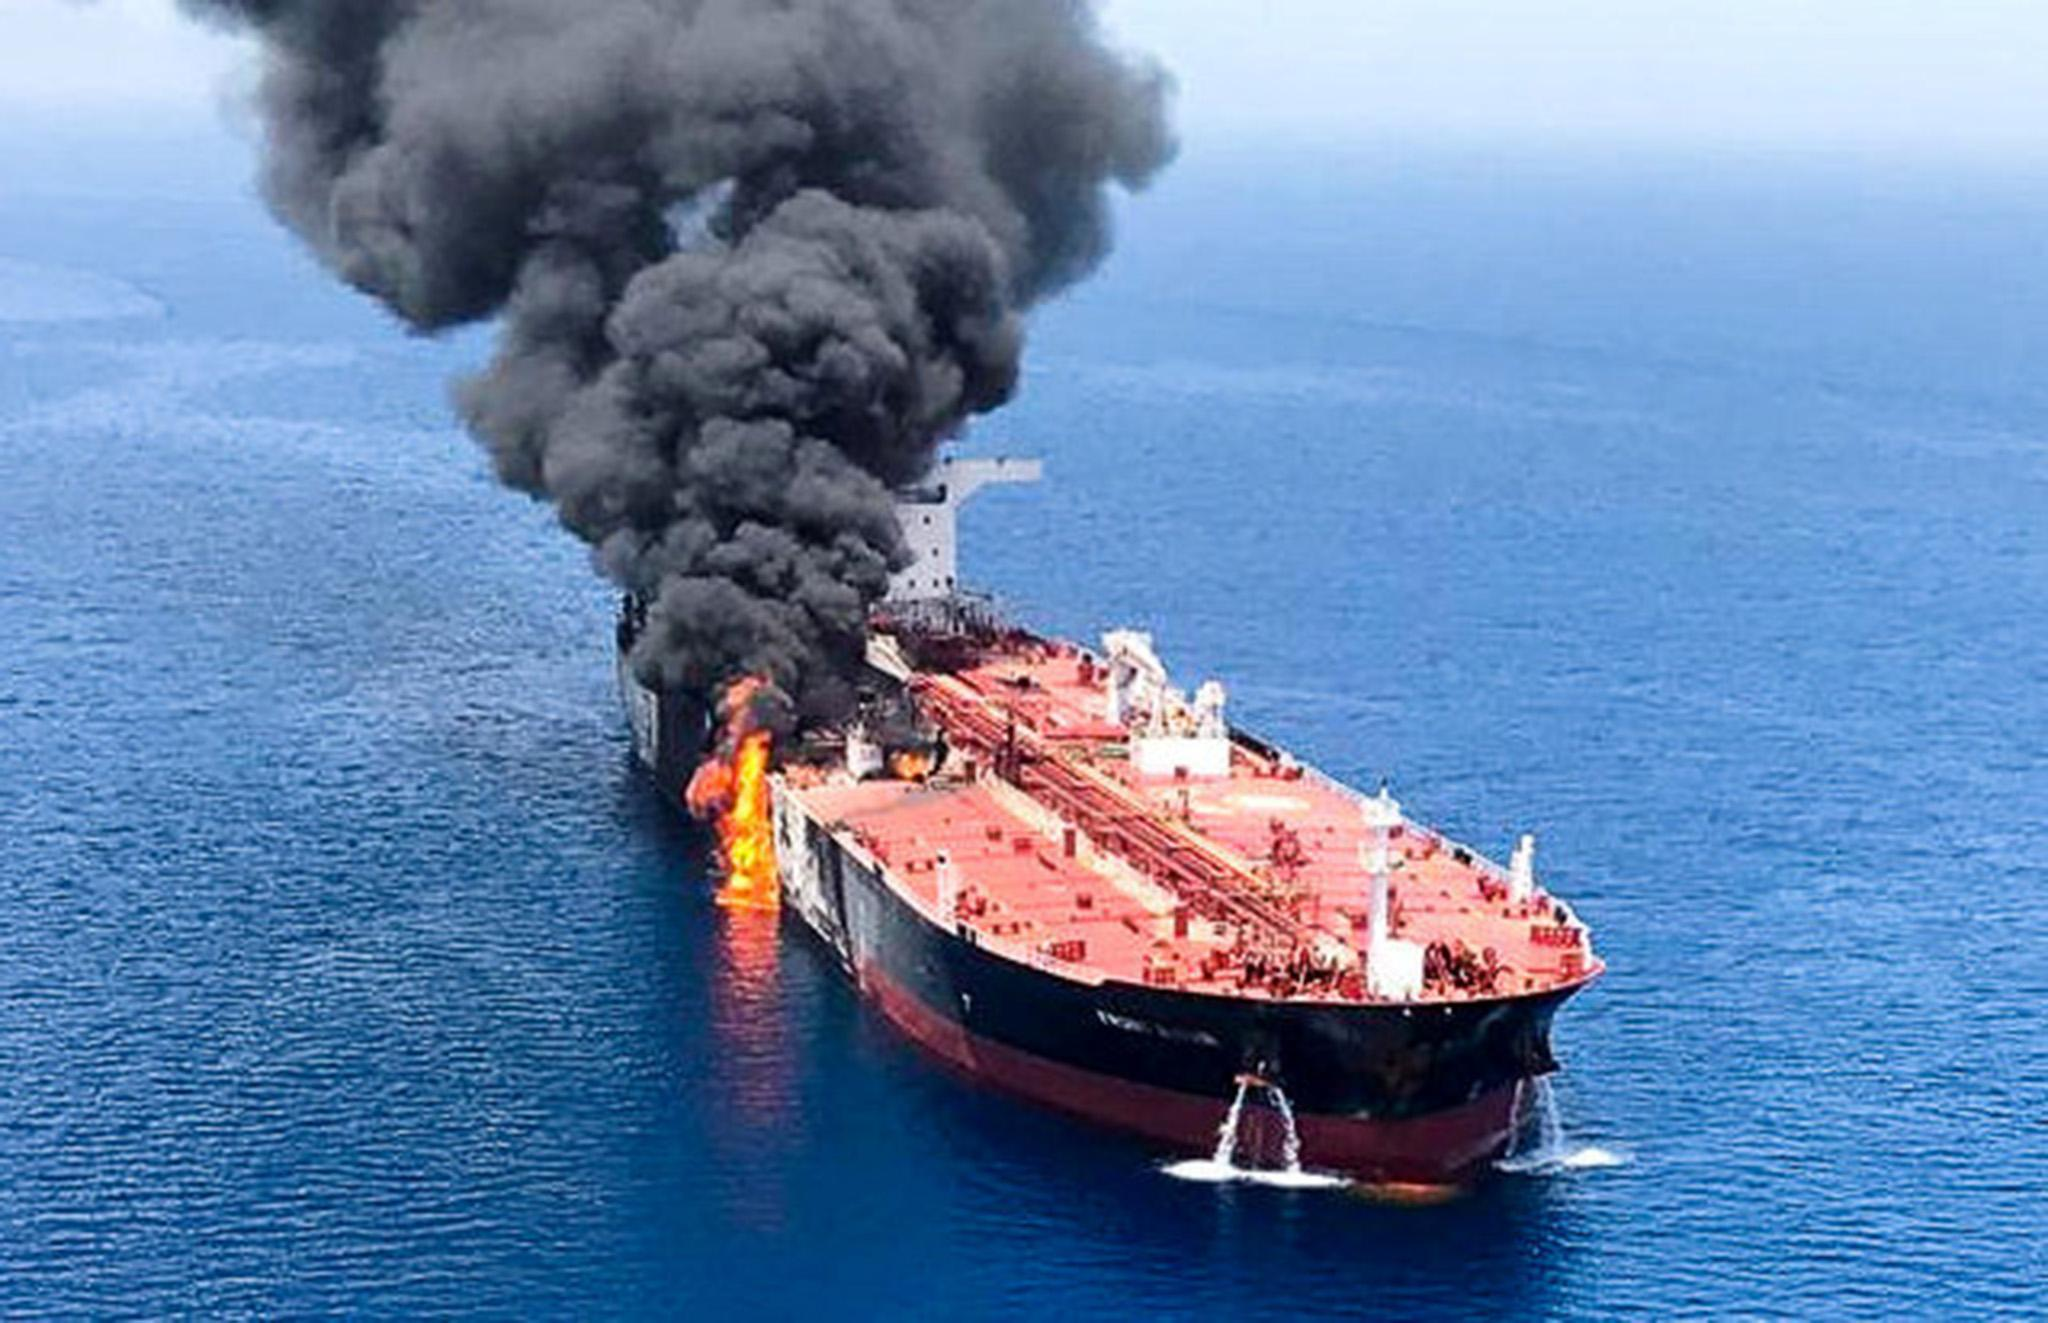 They make claims to create tension': Iran denies boats tried to